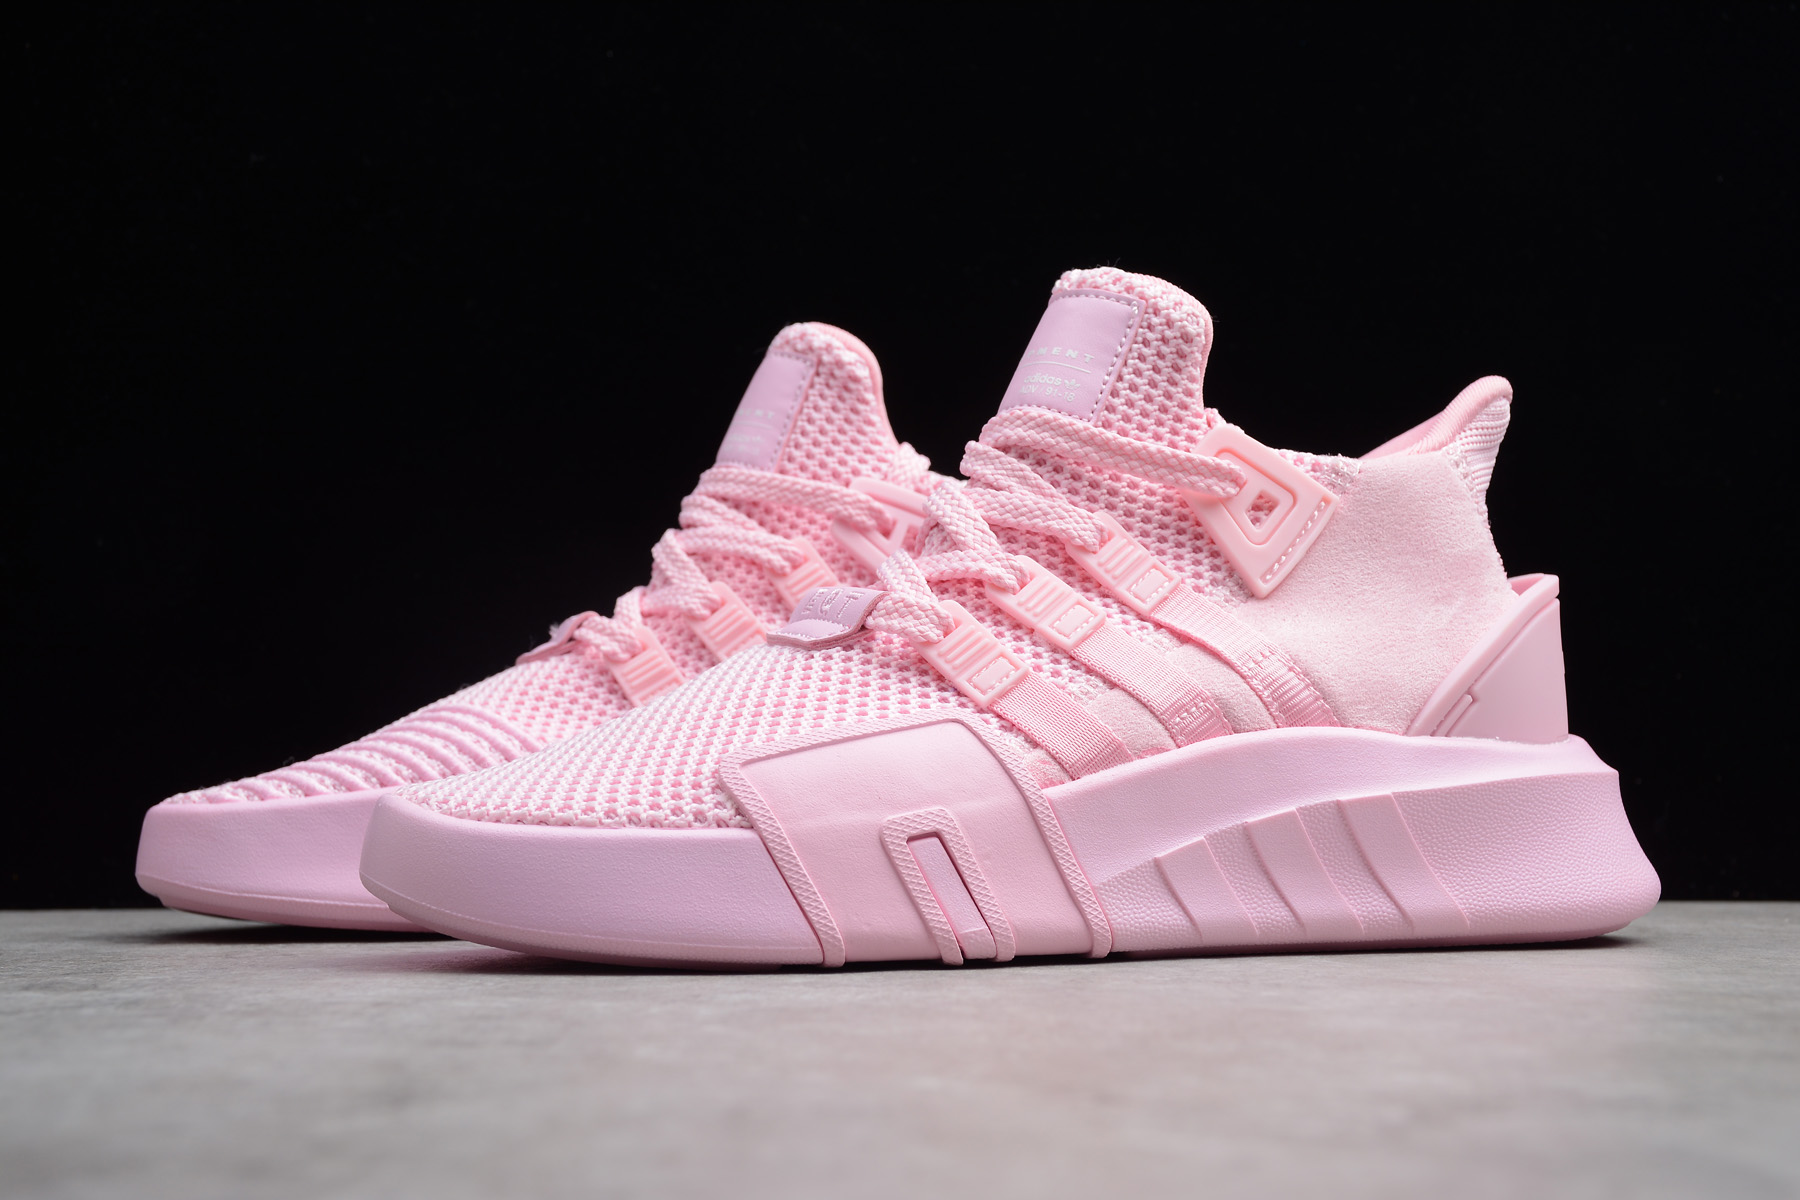 WMNS adidas EQT Back ADV Pink AC7346 For Sale